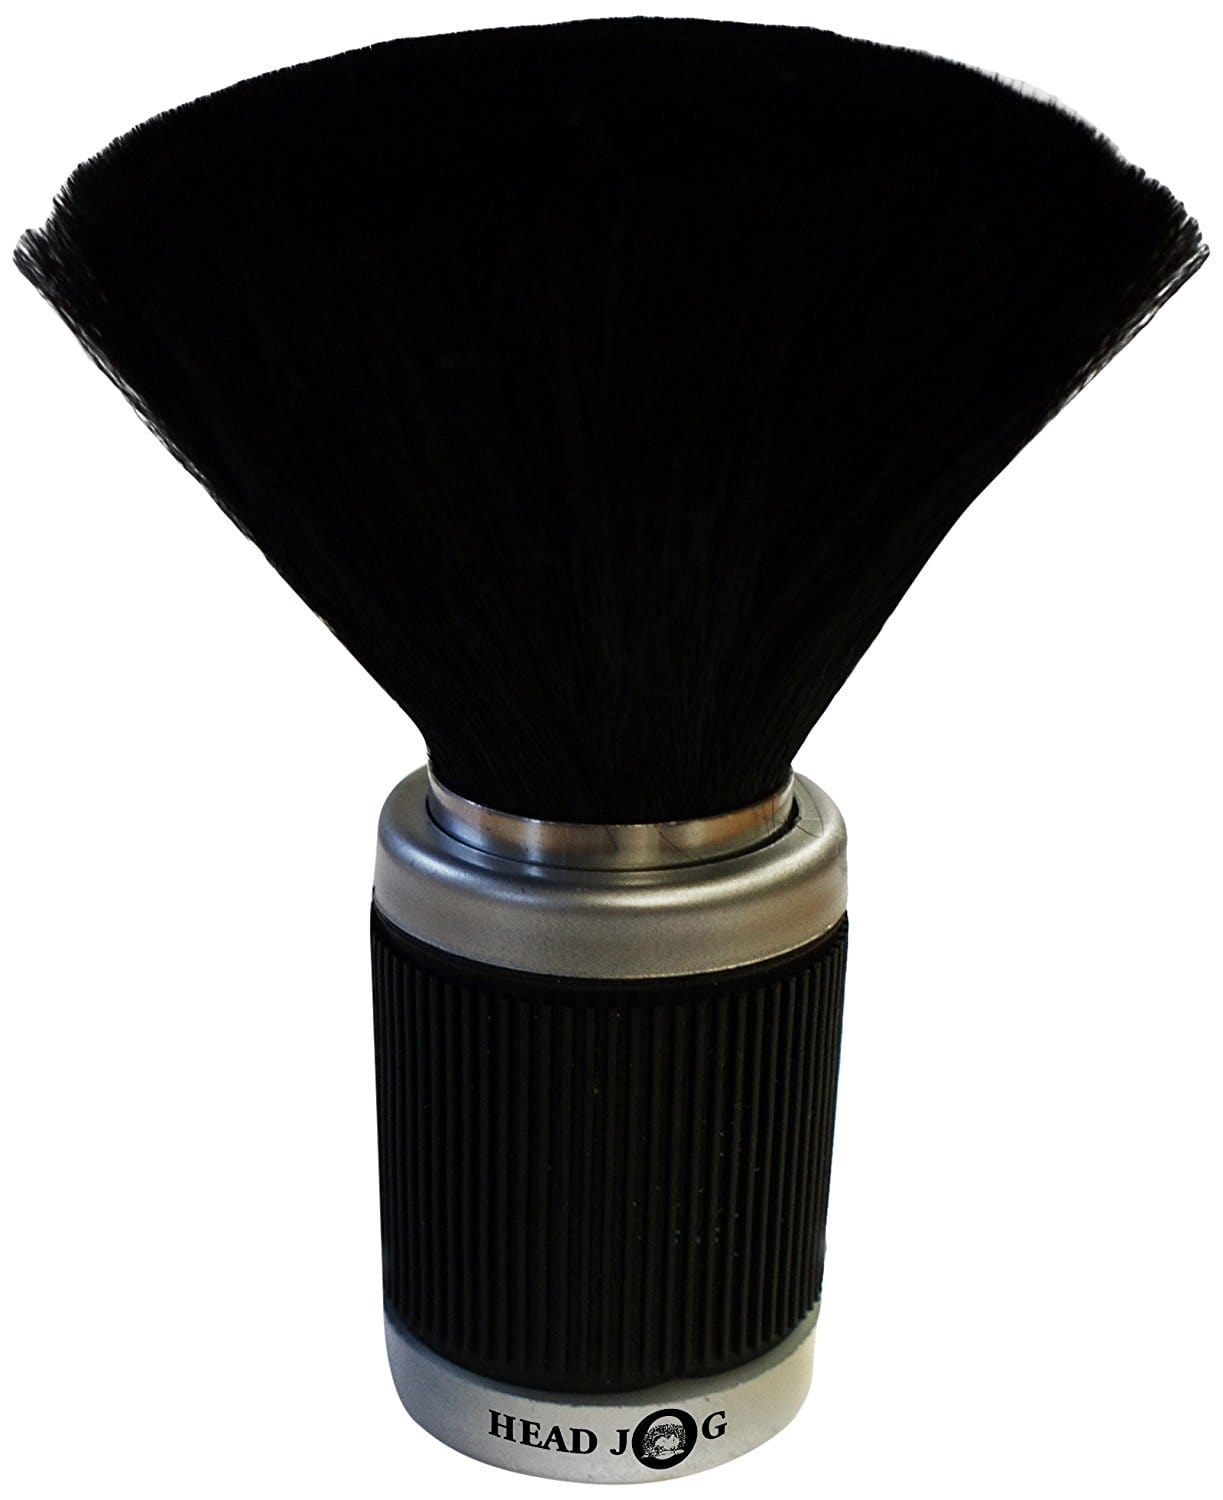 Head Jog Black Rubber Grip Neck Brush